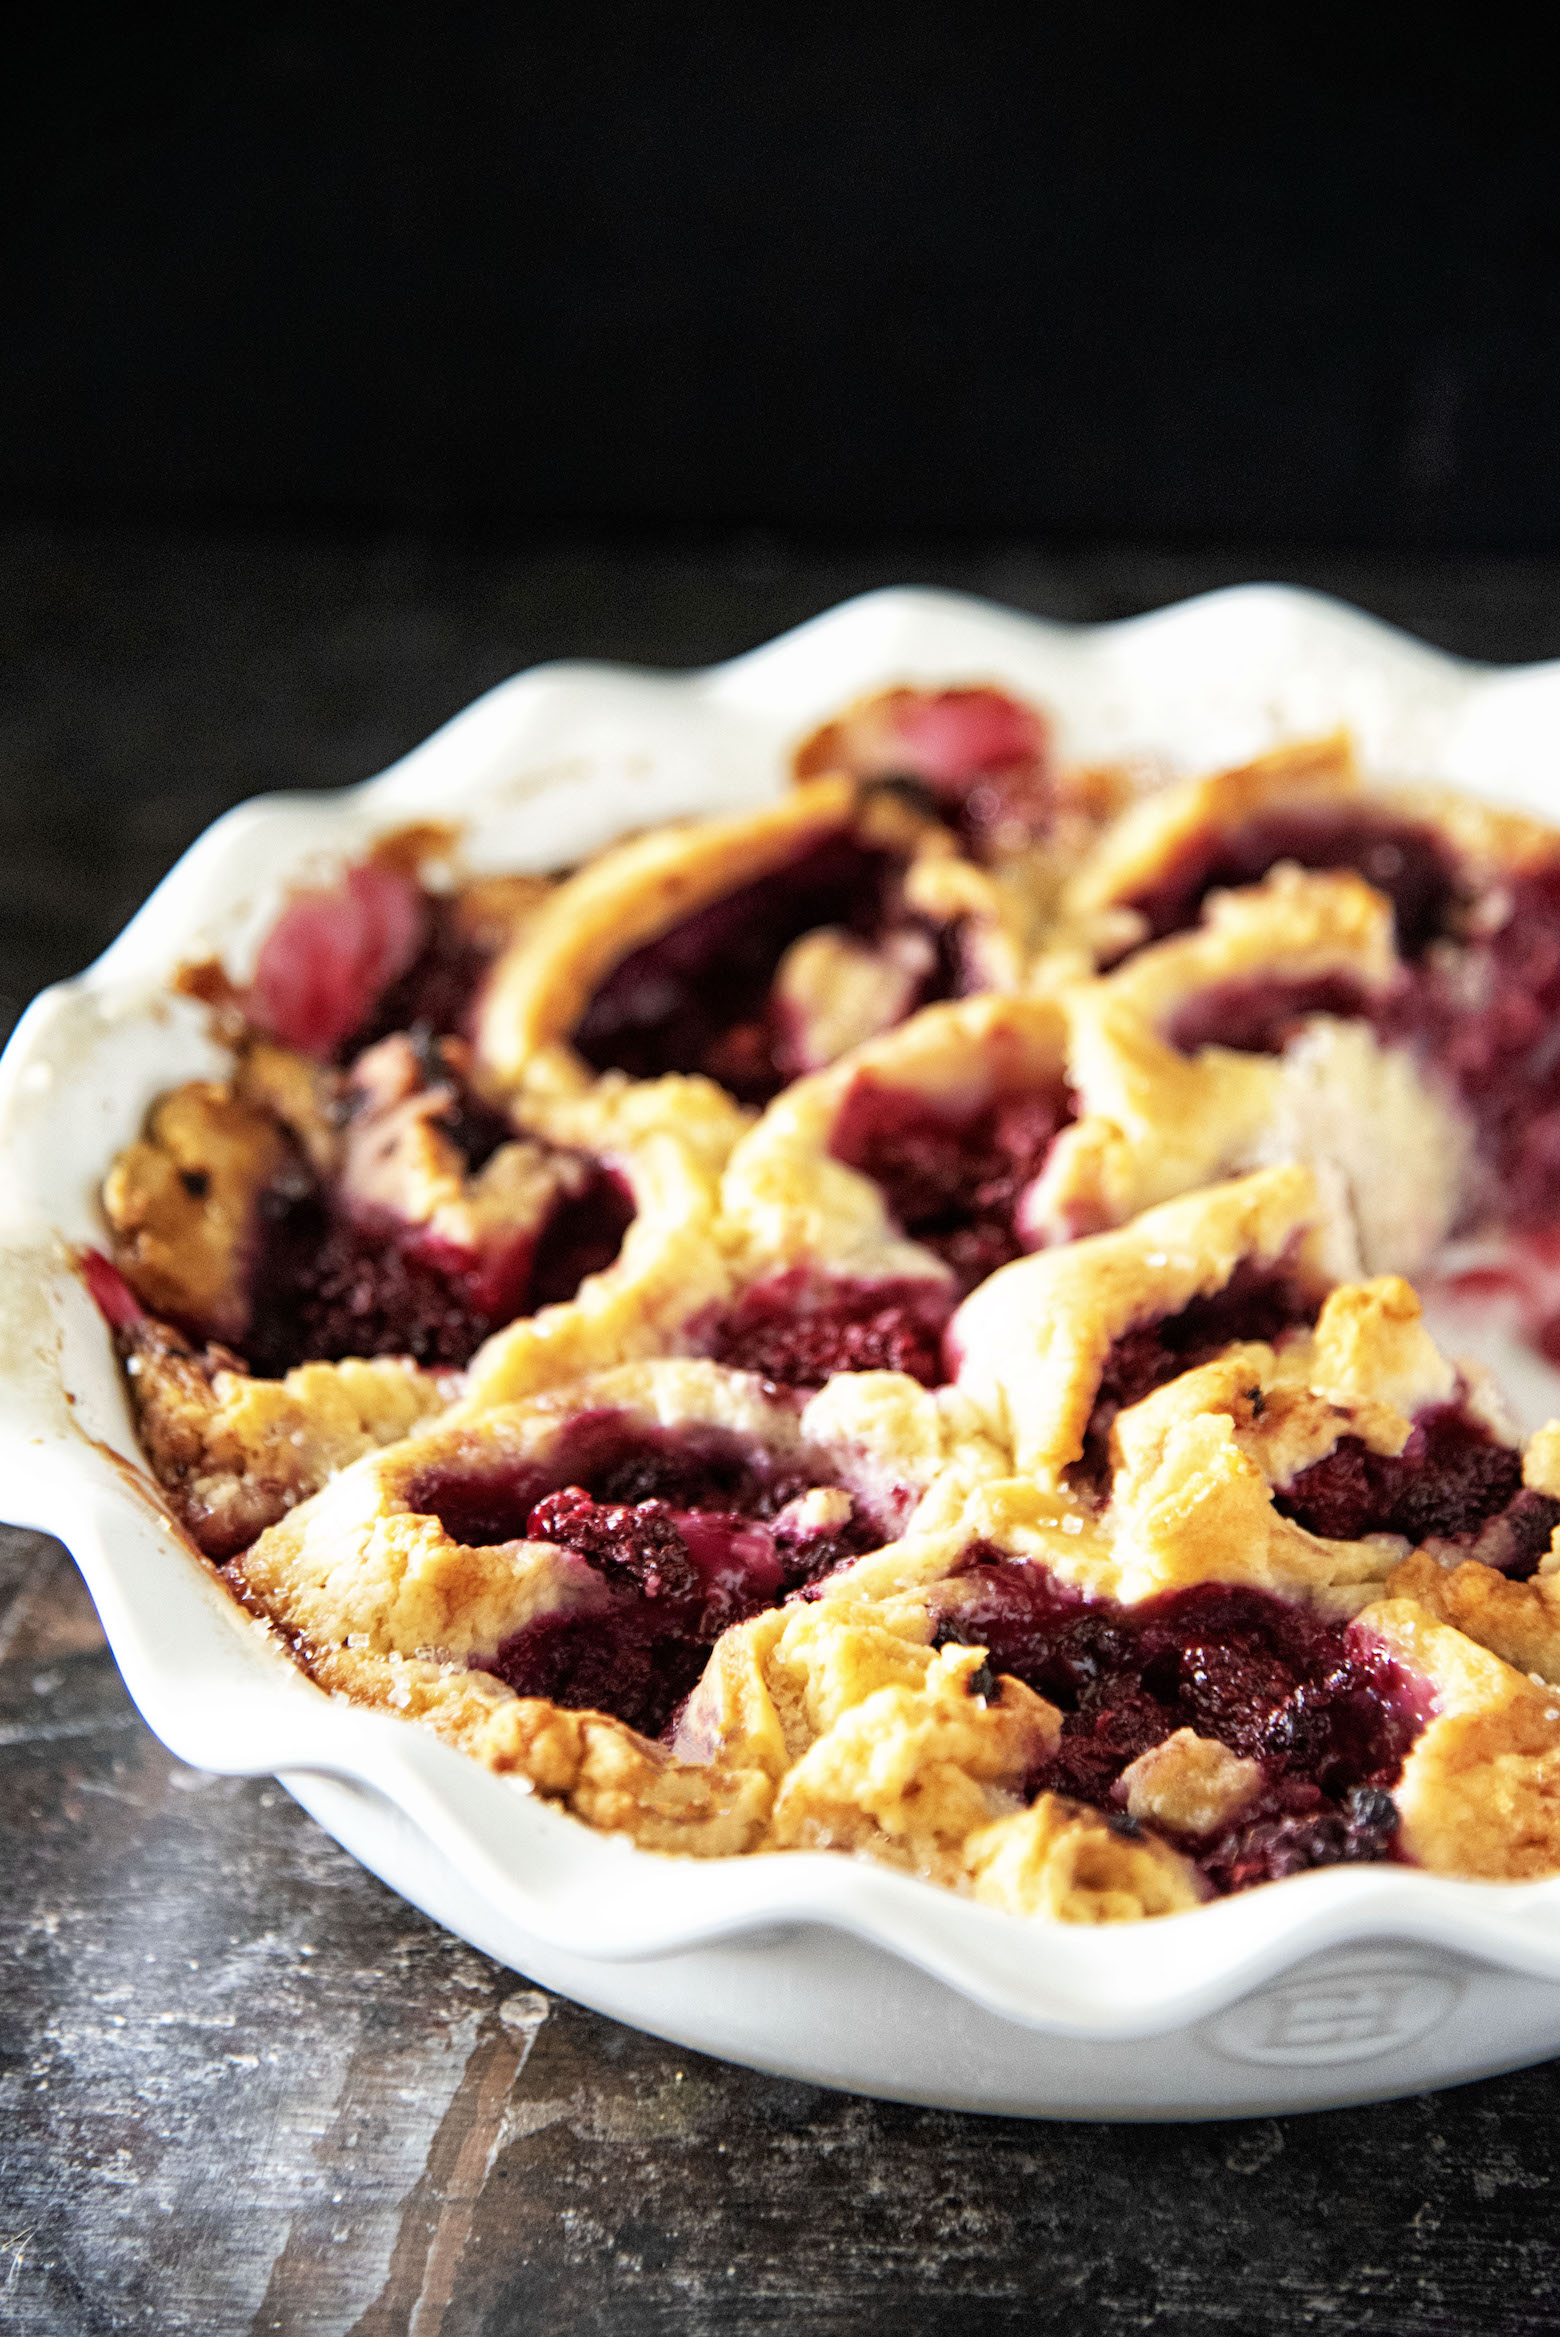 Tayberry Biscuit Cobbler